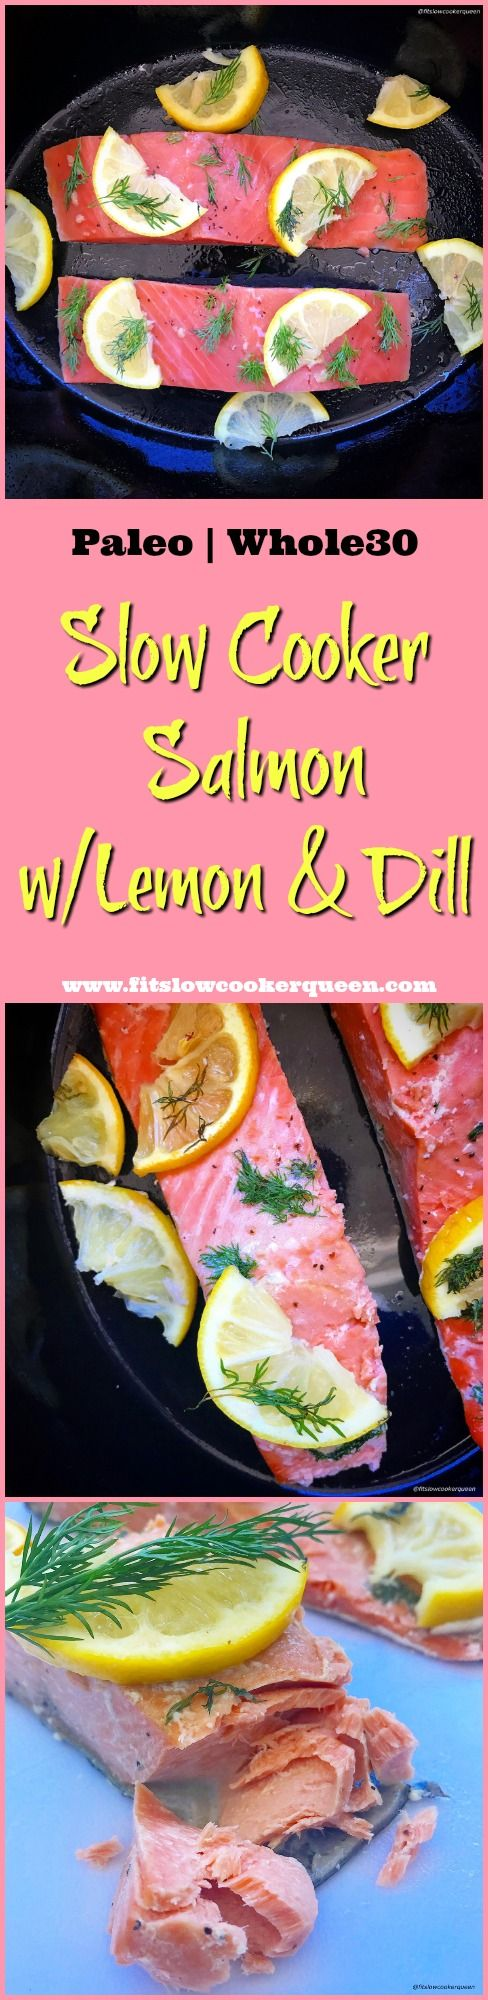 slow cooker crockpot whole30 paleo low-carb - Cooking salmon in the slow cooker produces perfectly cooked salmon with minimal effort. With less than 5 ingredients, this recipe is both healthy & easy.